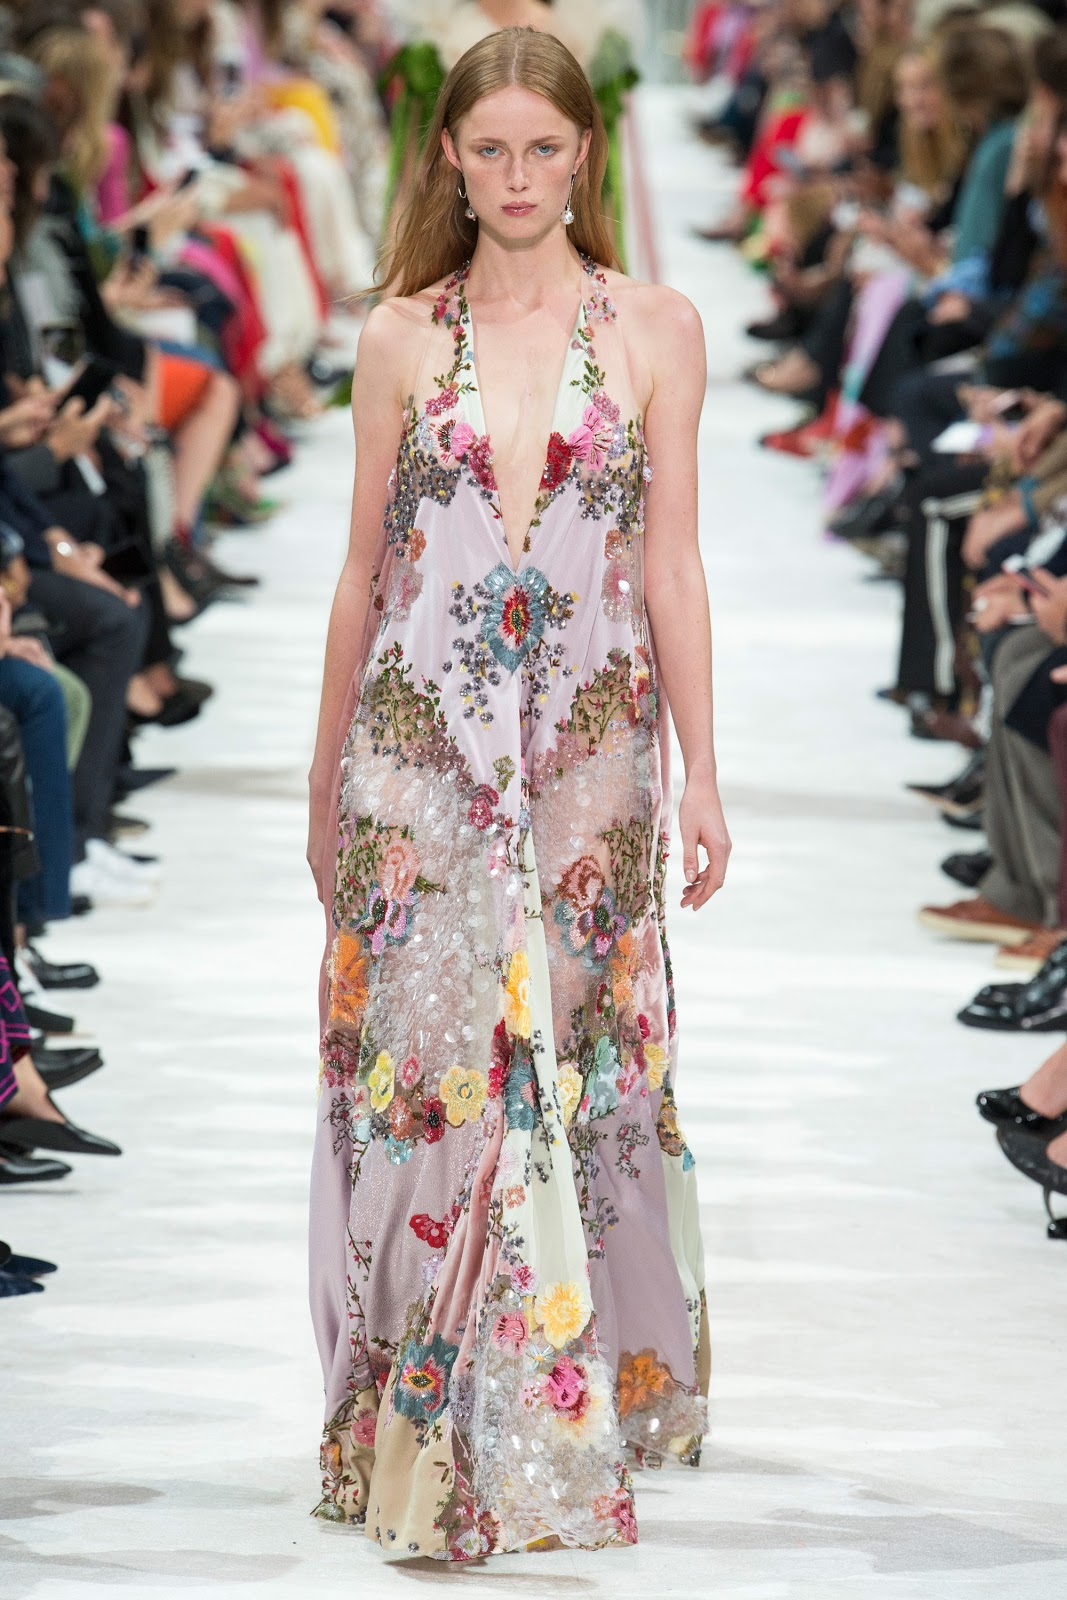 The Most Beautiful Dresses From the Valentino Fall 2015